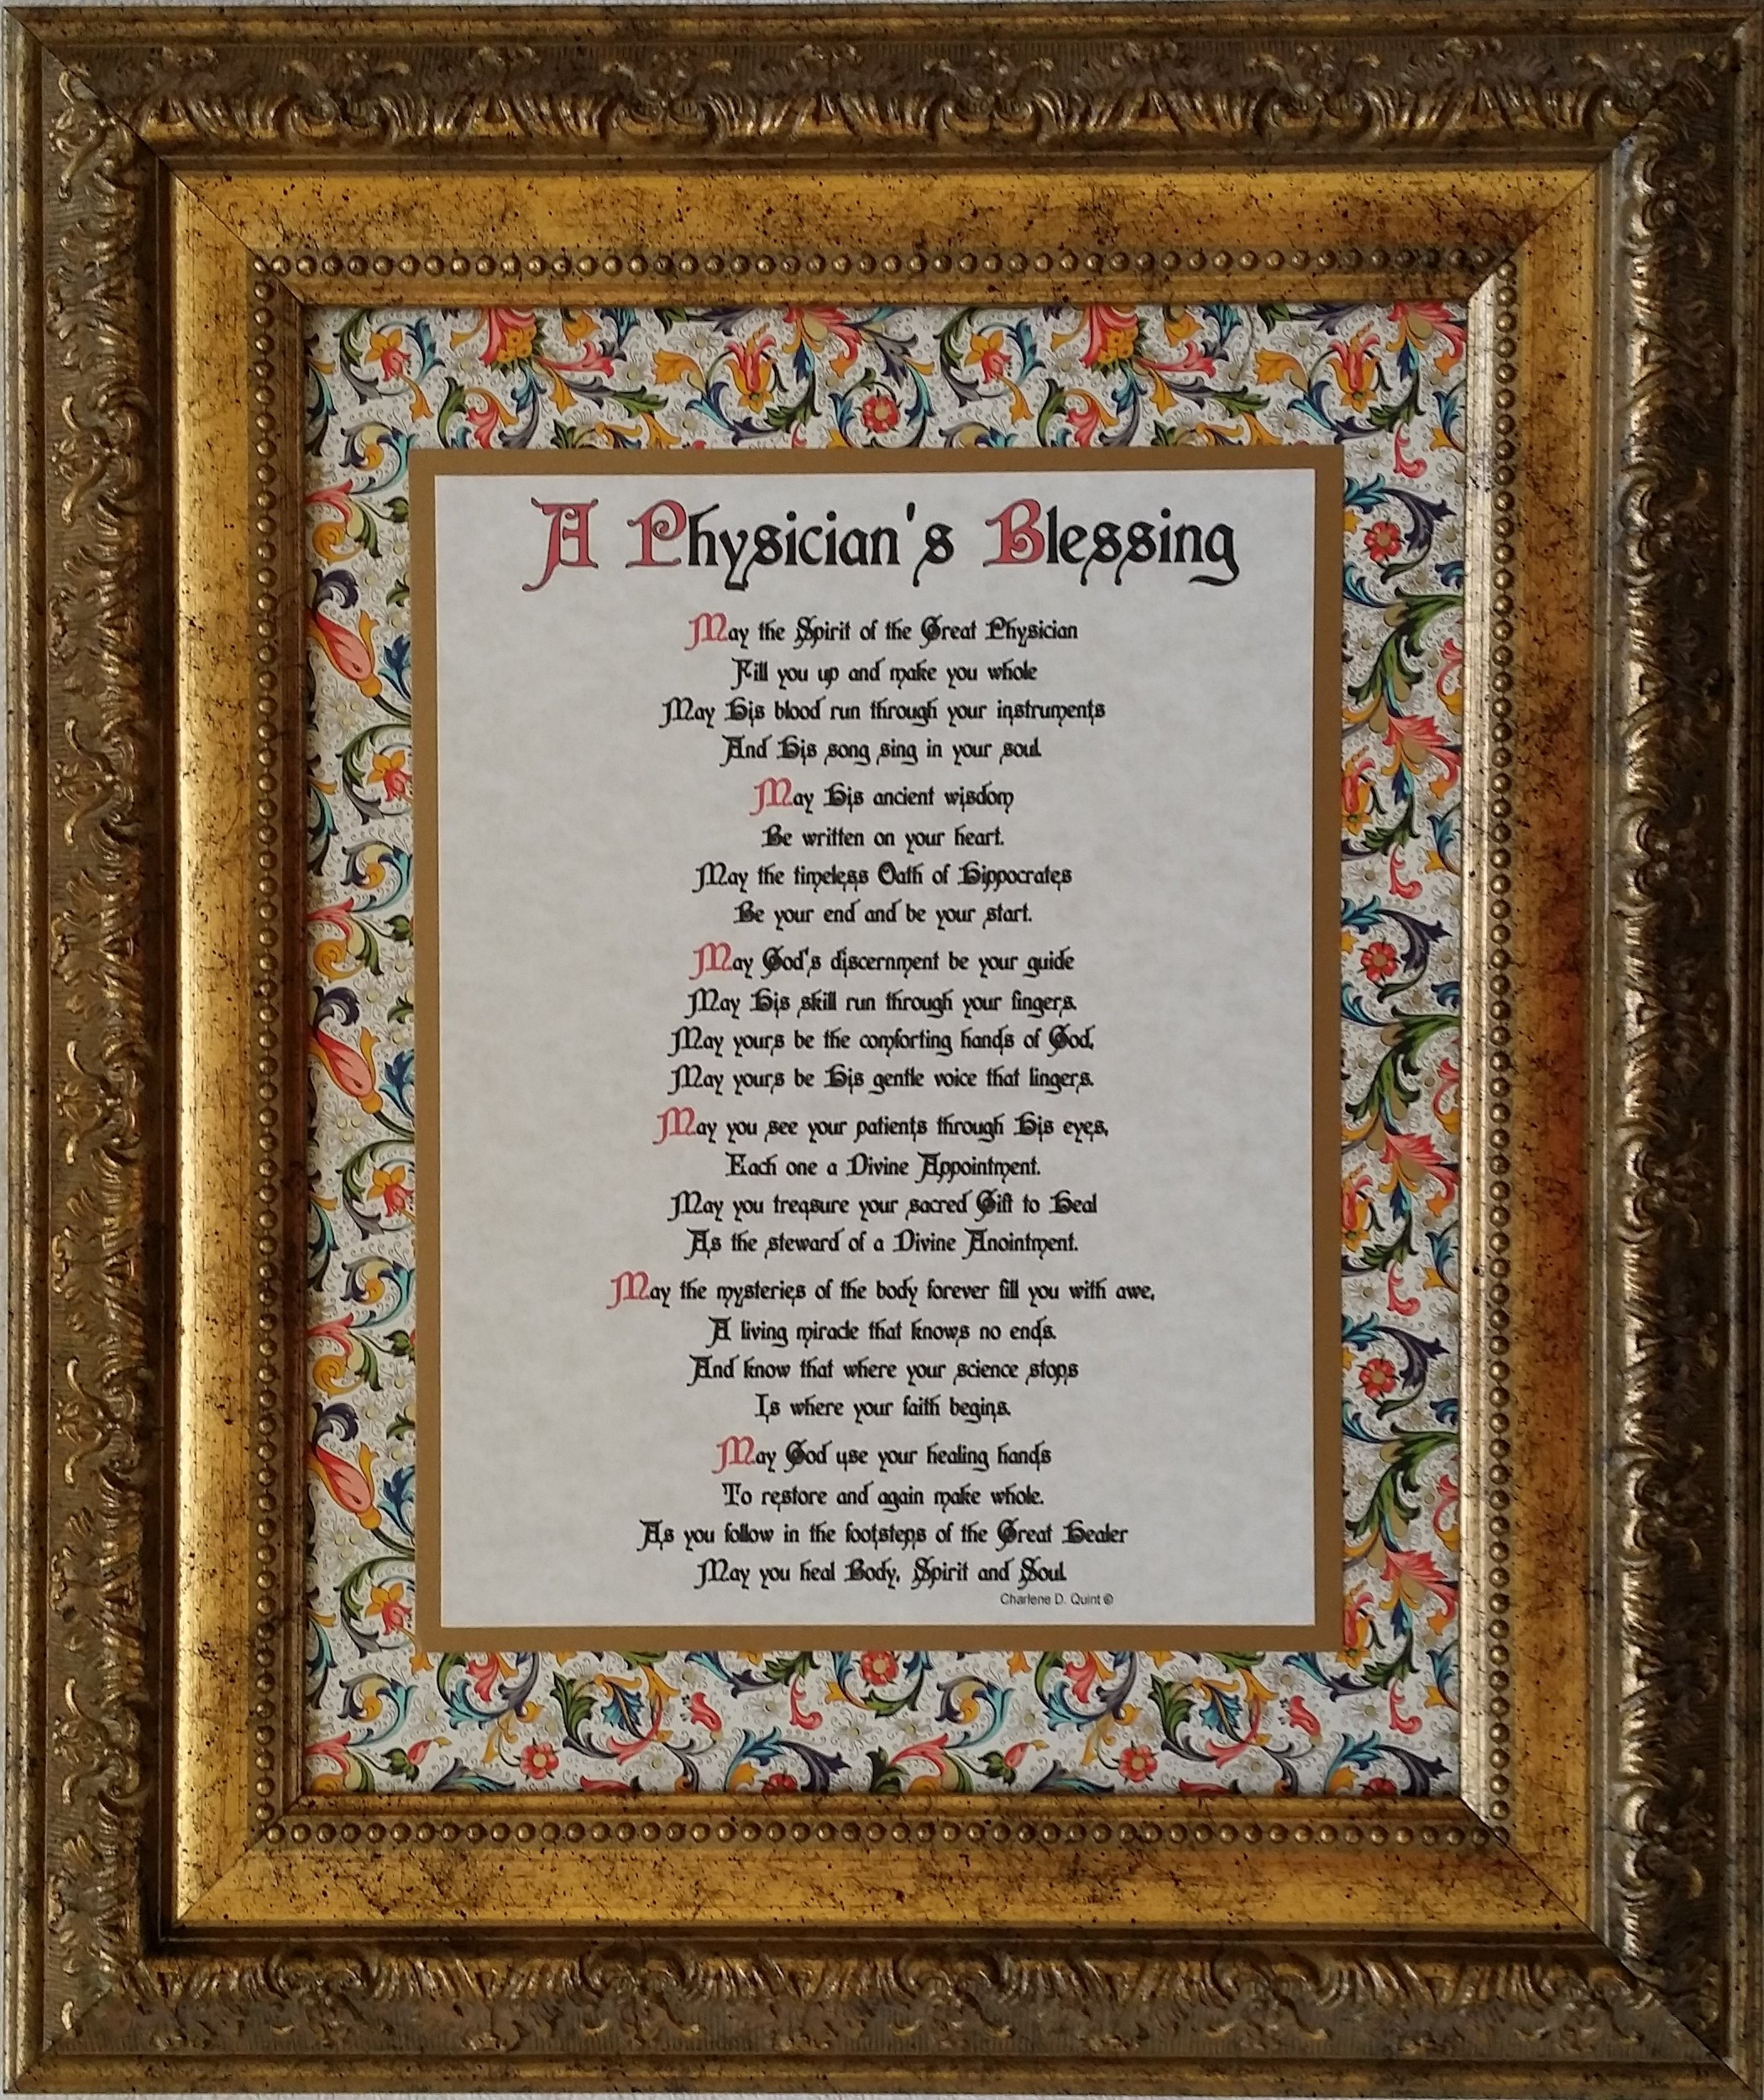 A Physician's Blessing - Framed Inspirational Prayer - Gift for a Special Doctor or Graduation from Medical School